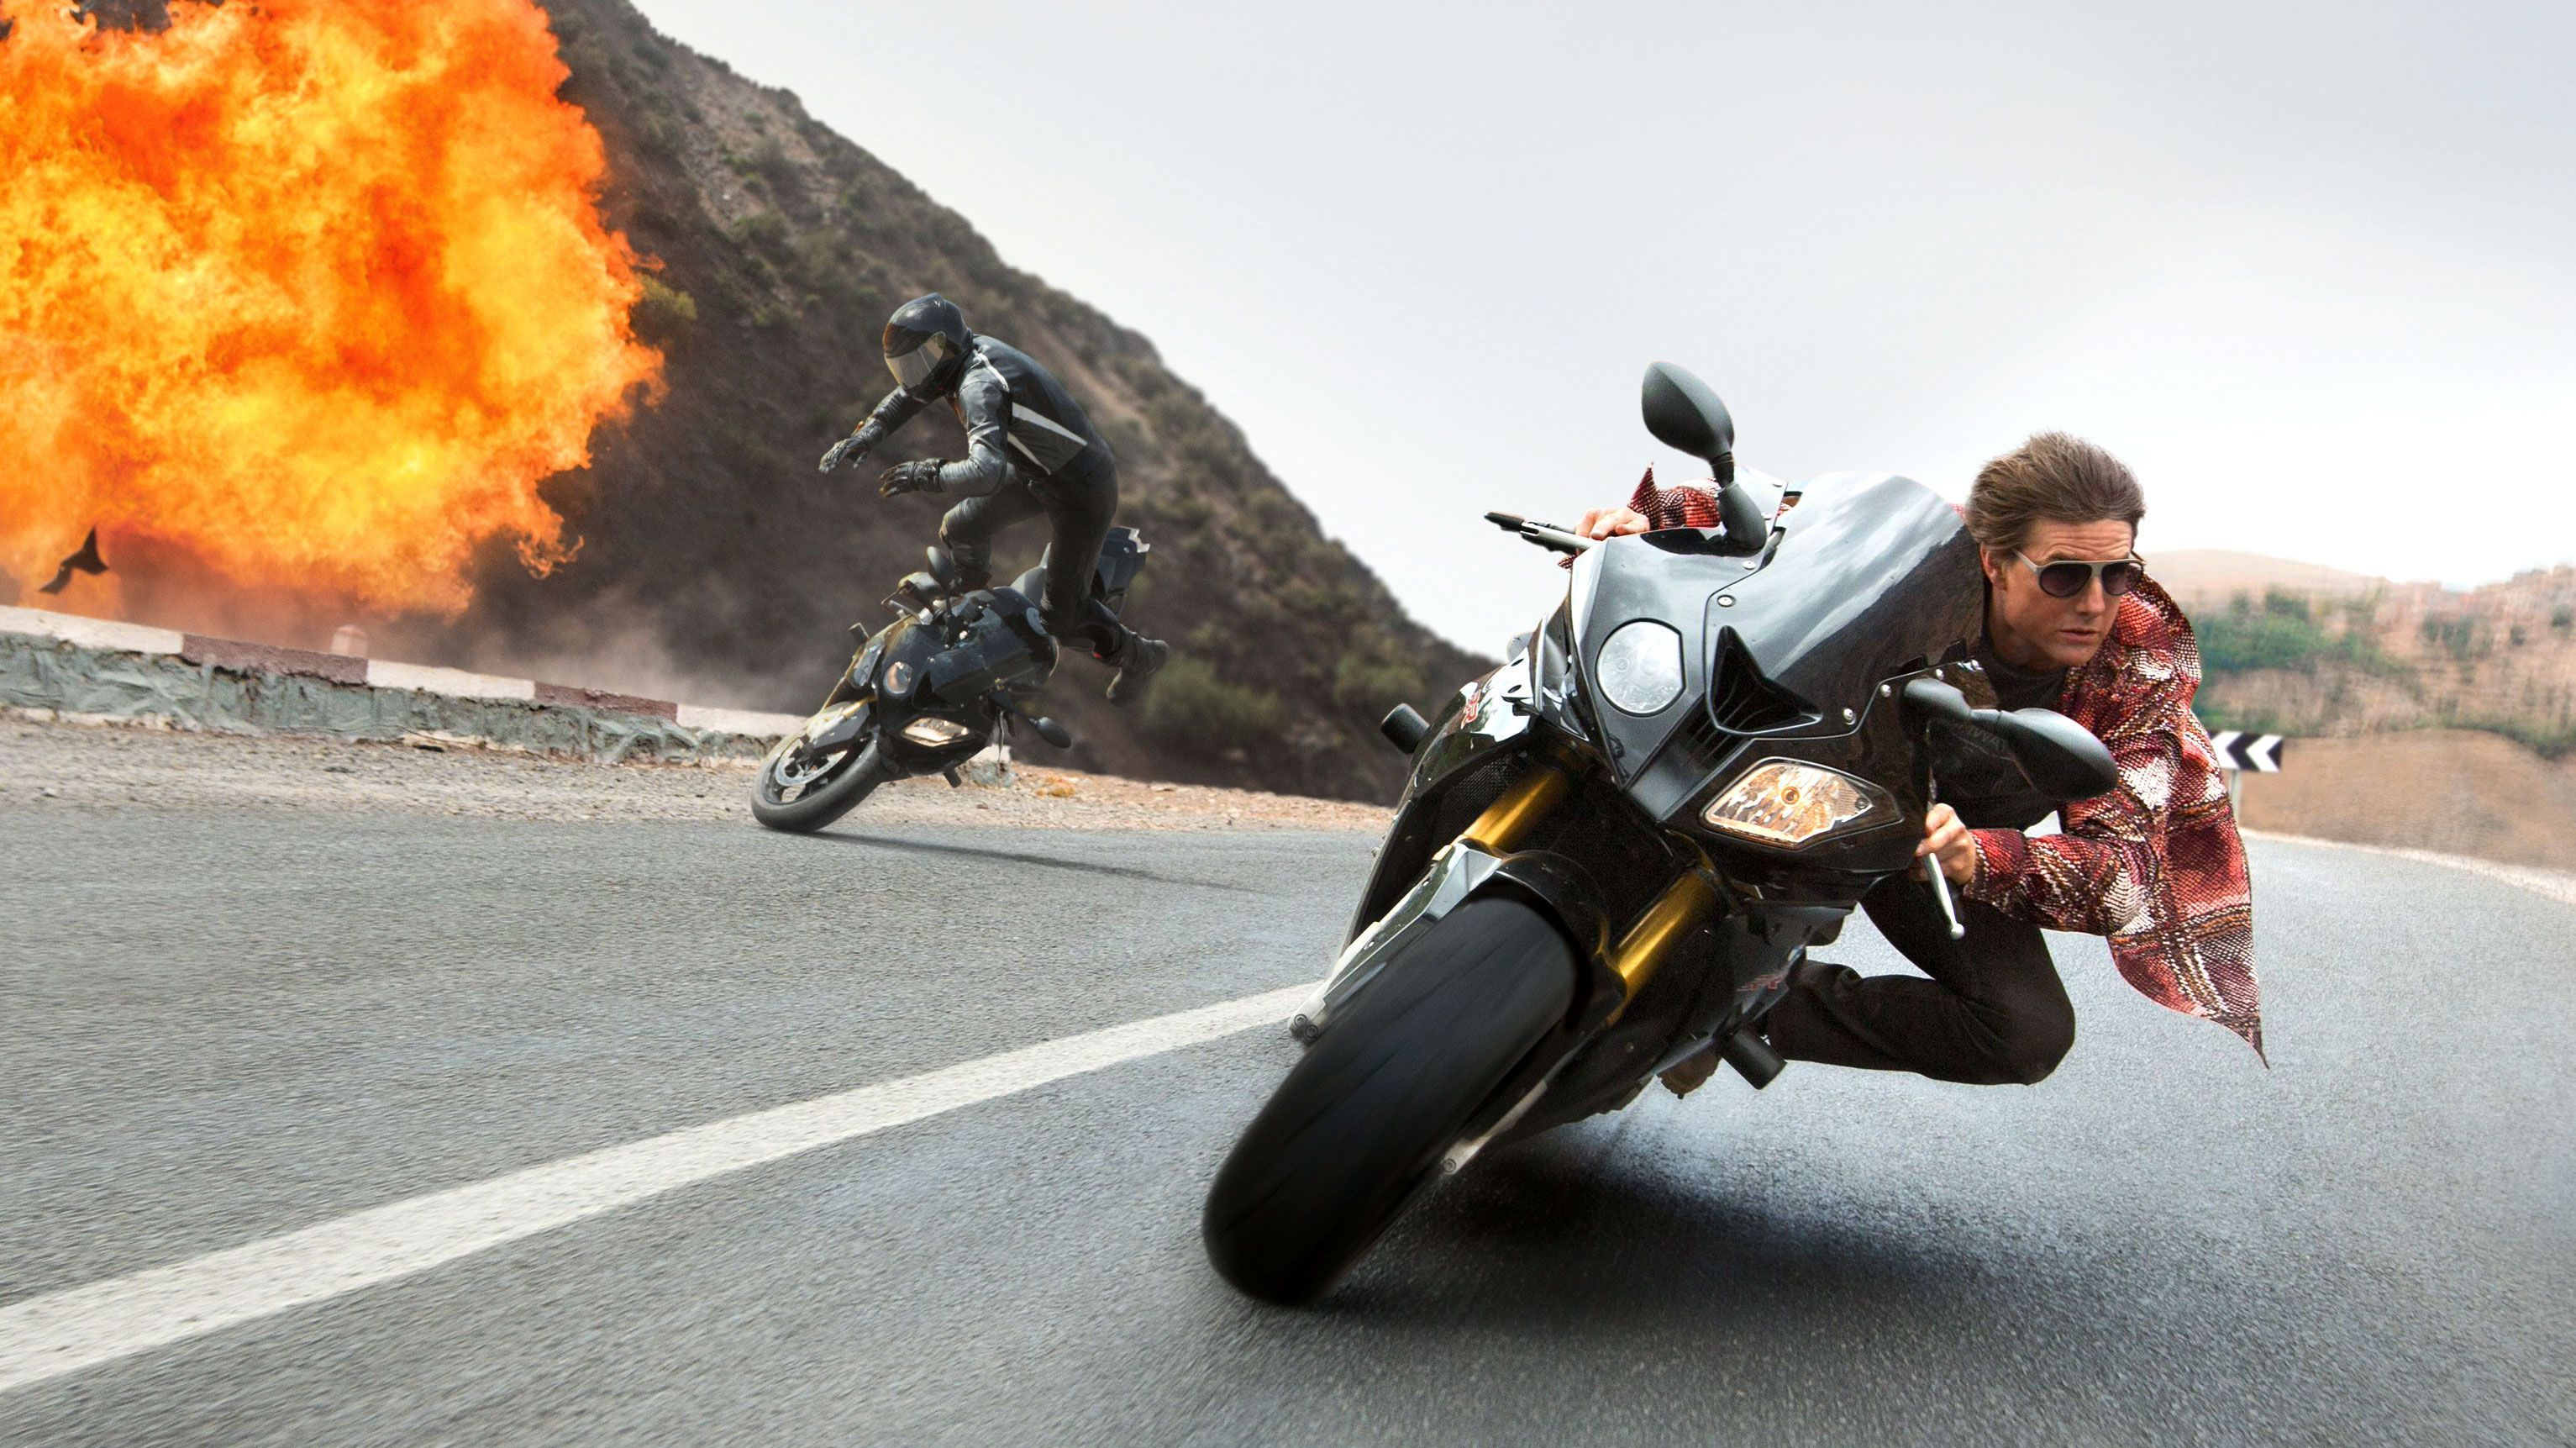 Mission: Impossible (2015) English Movie HD dvdrip hd Cam 720p 1080p Download, Mission: Impossible (2015) Full HD Movie Torrent Download, Mission: Impossible (2015) Full Movies Download MP4 MKV AVI 3GP, Mission: Impossible (2015) Hd Online Full Movie Torrent 720p download, Mission: Impossible (2015) Movie Download In Hindi 300MB, Mission: Impossible (2015) Movie in Dvdrip | MP4 | 3GP | 720p & 300MB, Mission: Impossible (2015) Movie MP4 | 3GP | 720p & 300MB